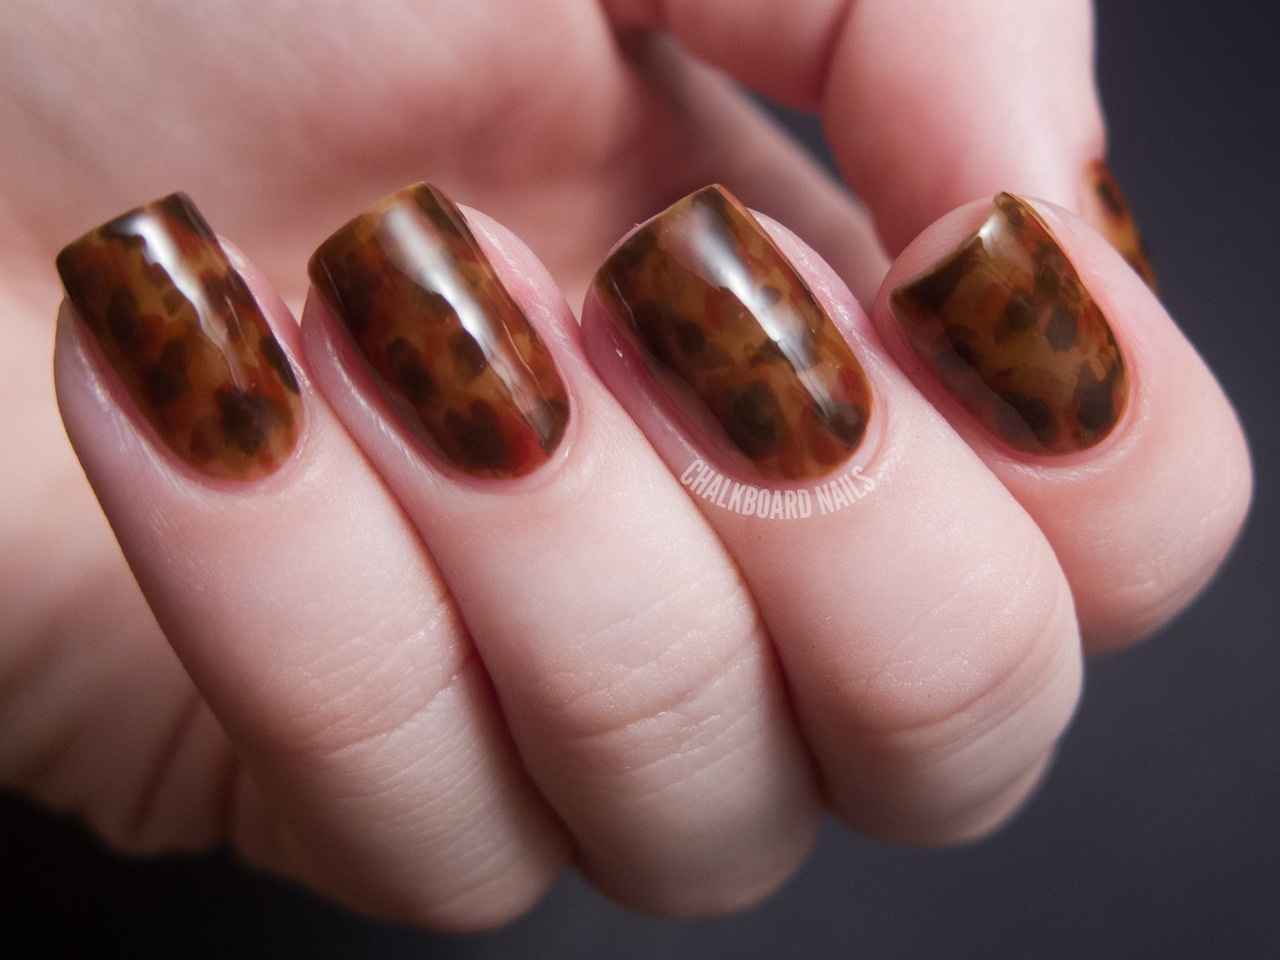 Tortoiseshell Nails These nails were created using three jellies in shades of brown. The particular shades I used were made for me by the amazing Lulu at Elevation Polish and aren't for sale, but you could make your own by mixing brown polishes with clear!